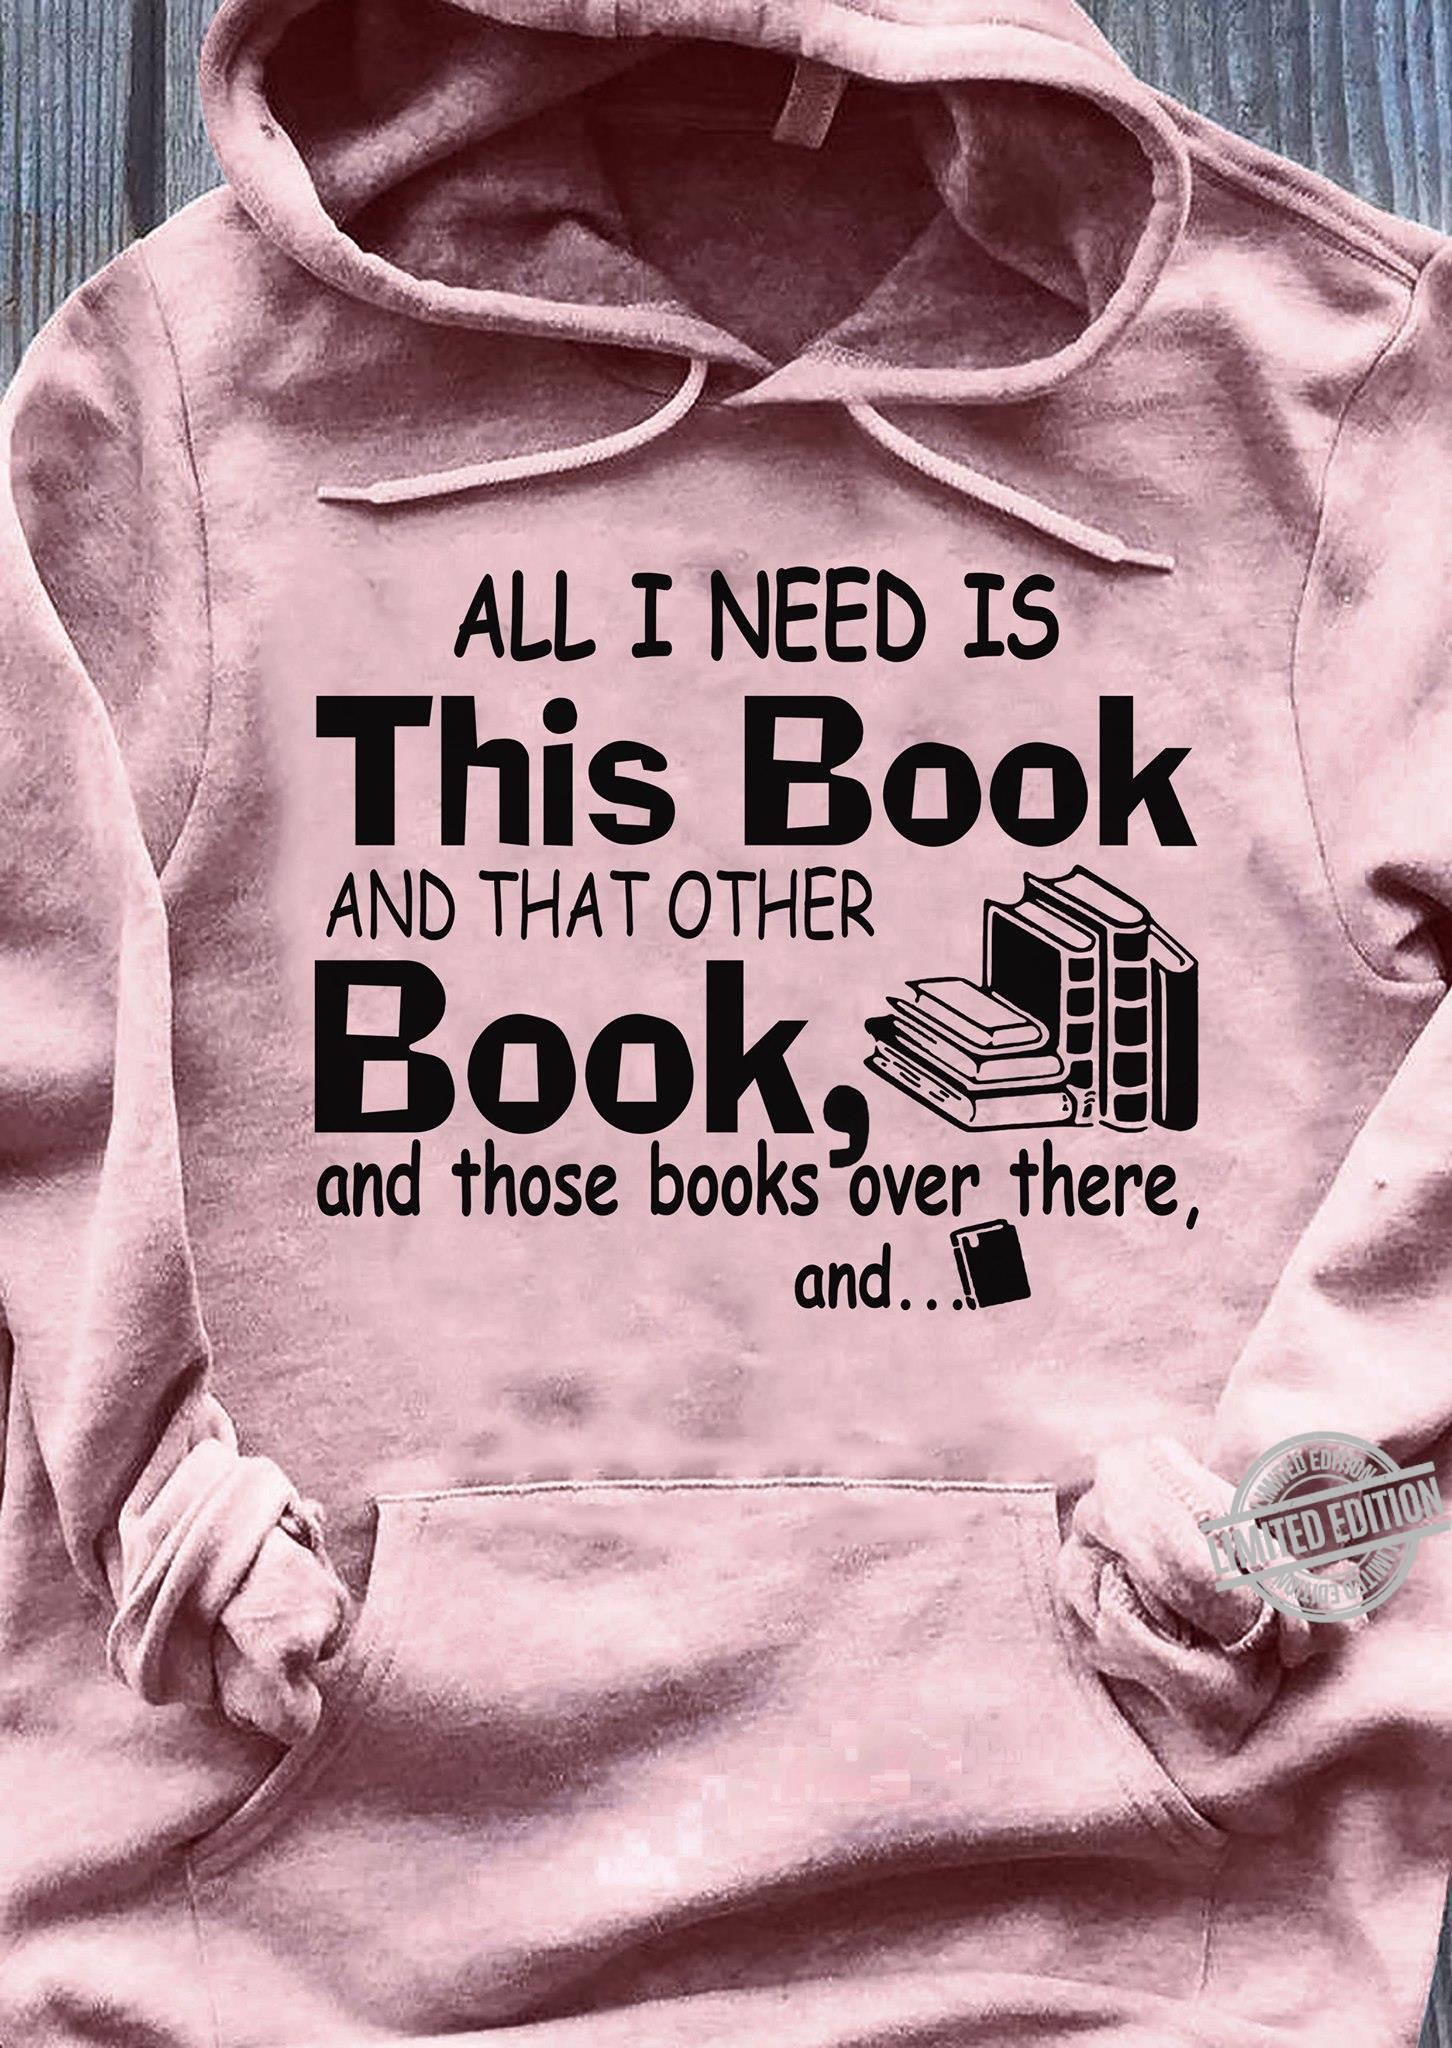 All I Need Is This Book And That Other Book And Those Books Over There Shirt